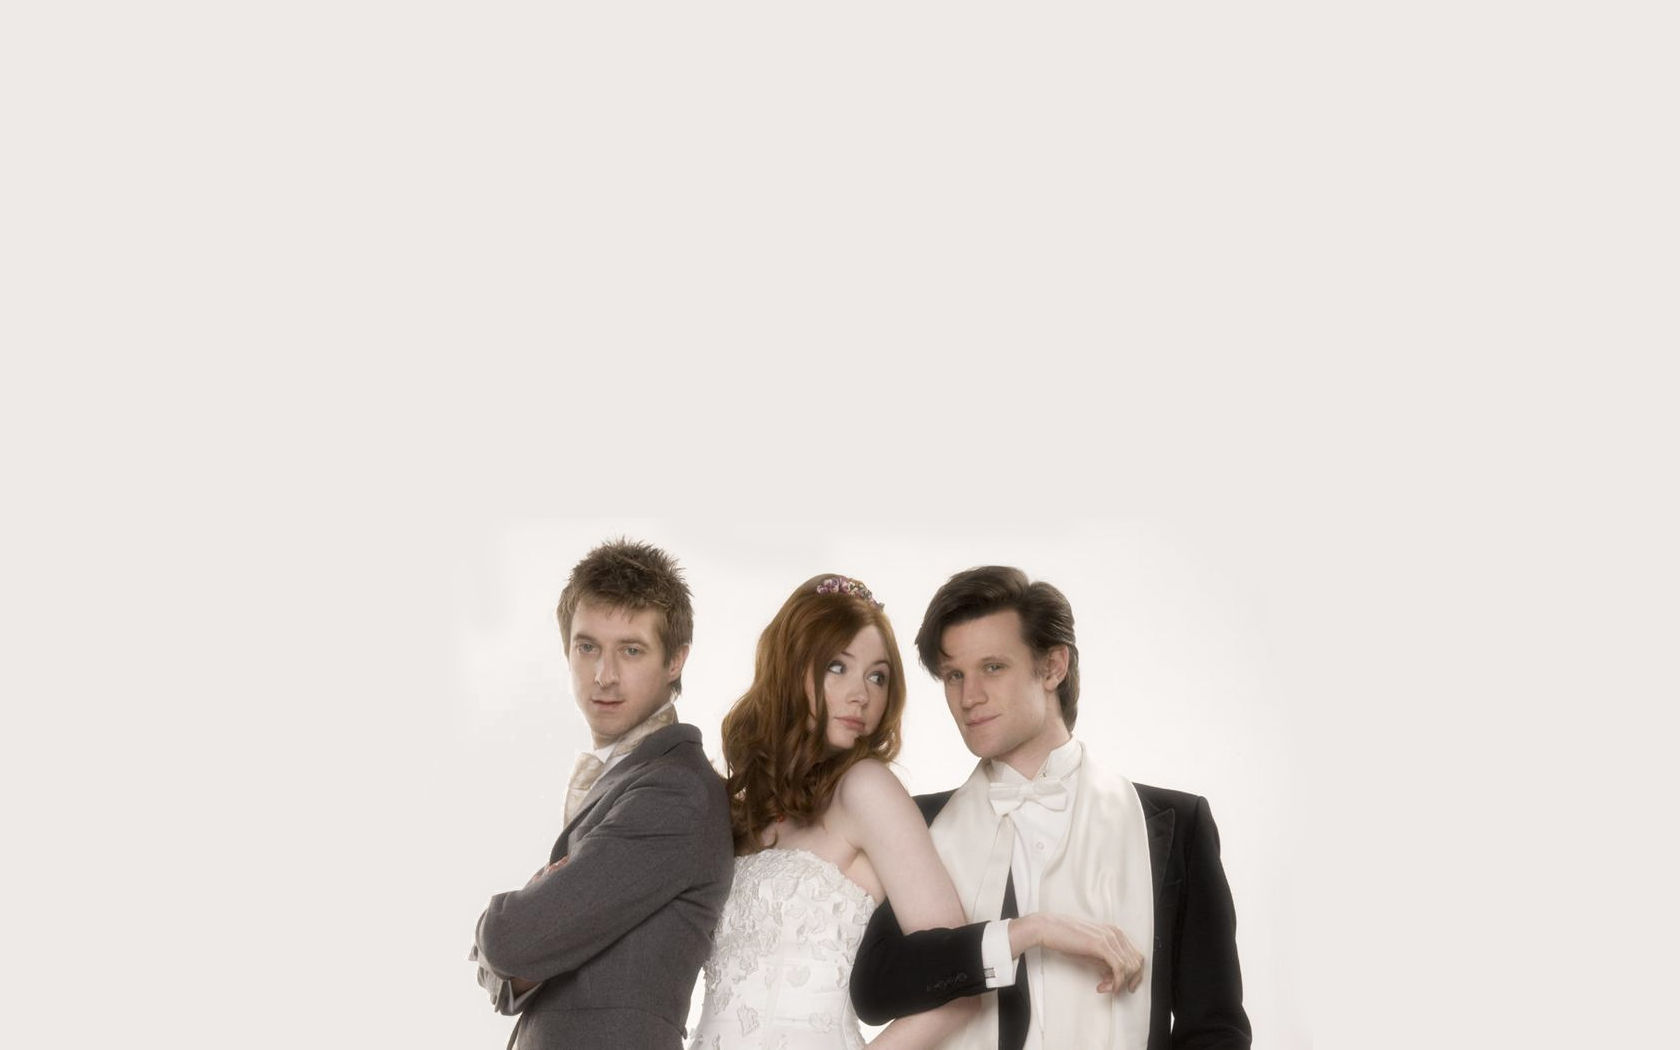 Doctor Who Wallpaper 109